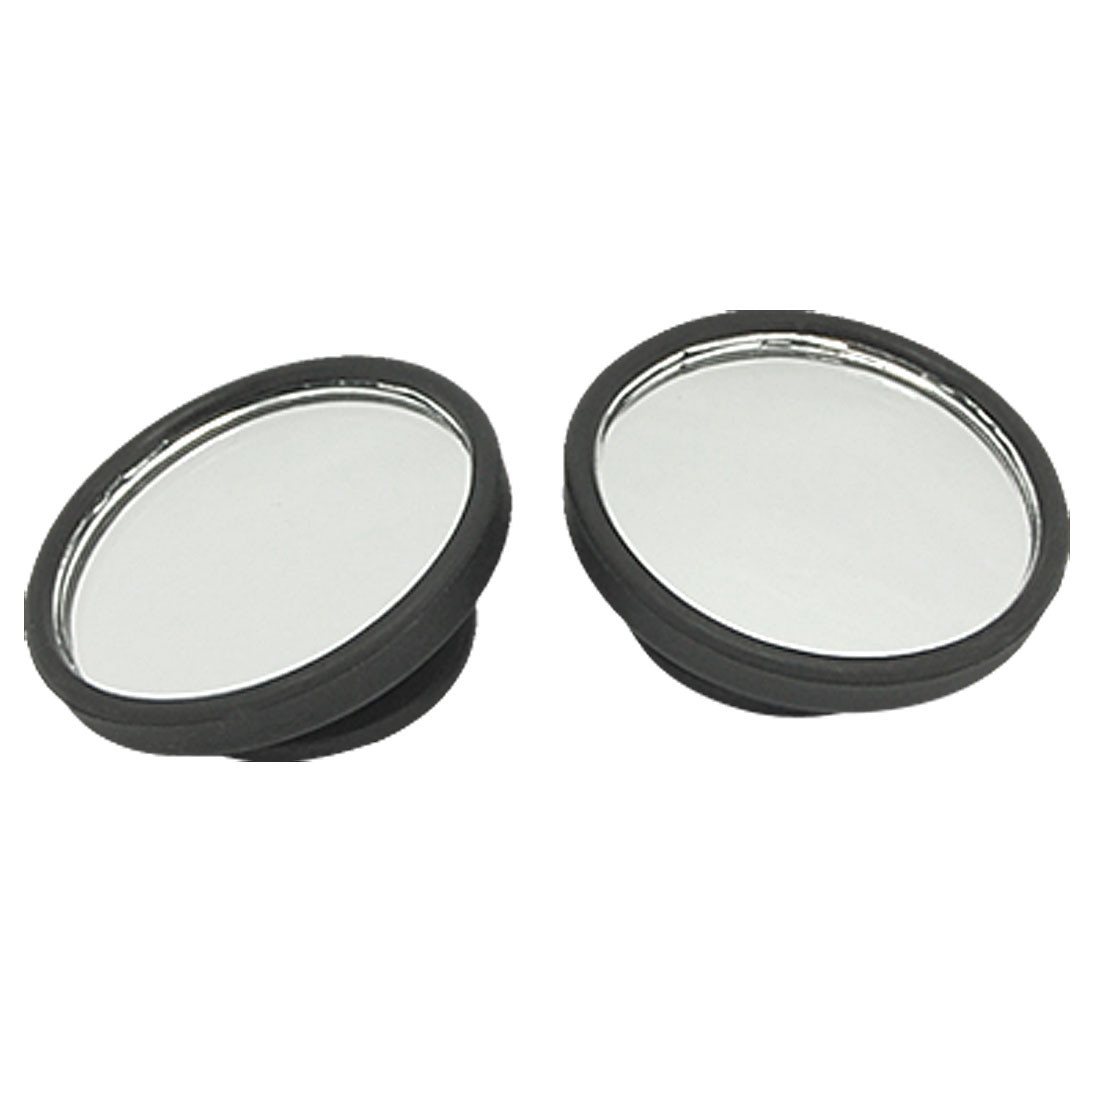 2pcs Universal Vehicle Car Wide Angle Round Rearview Blind Spot Convex Mirror